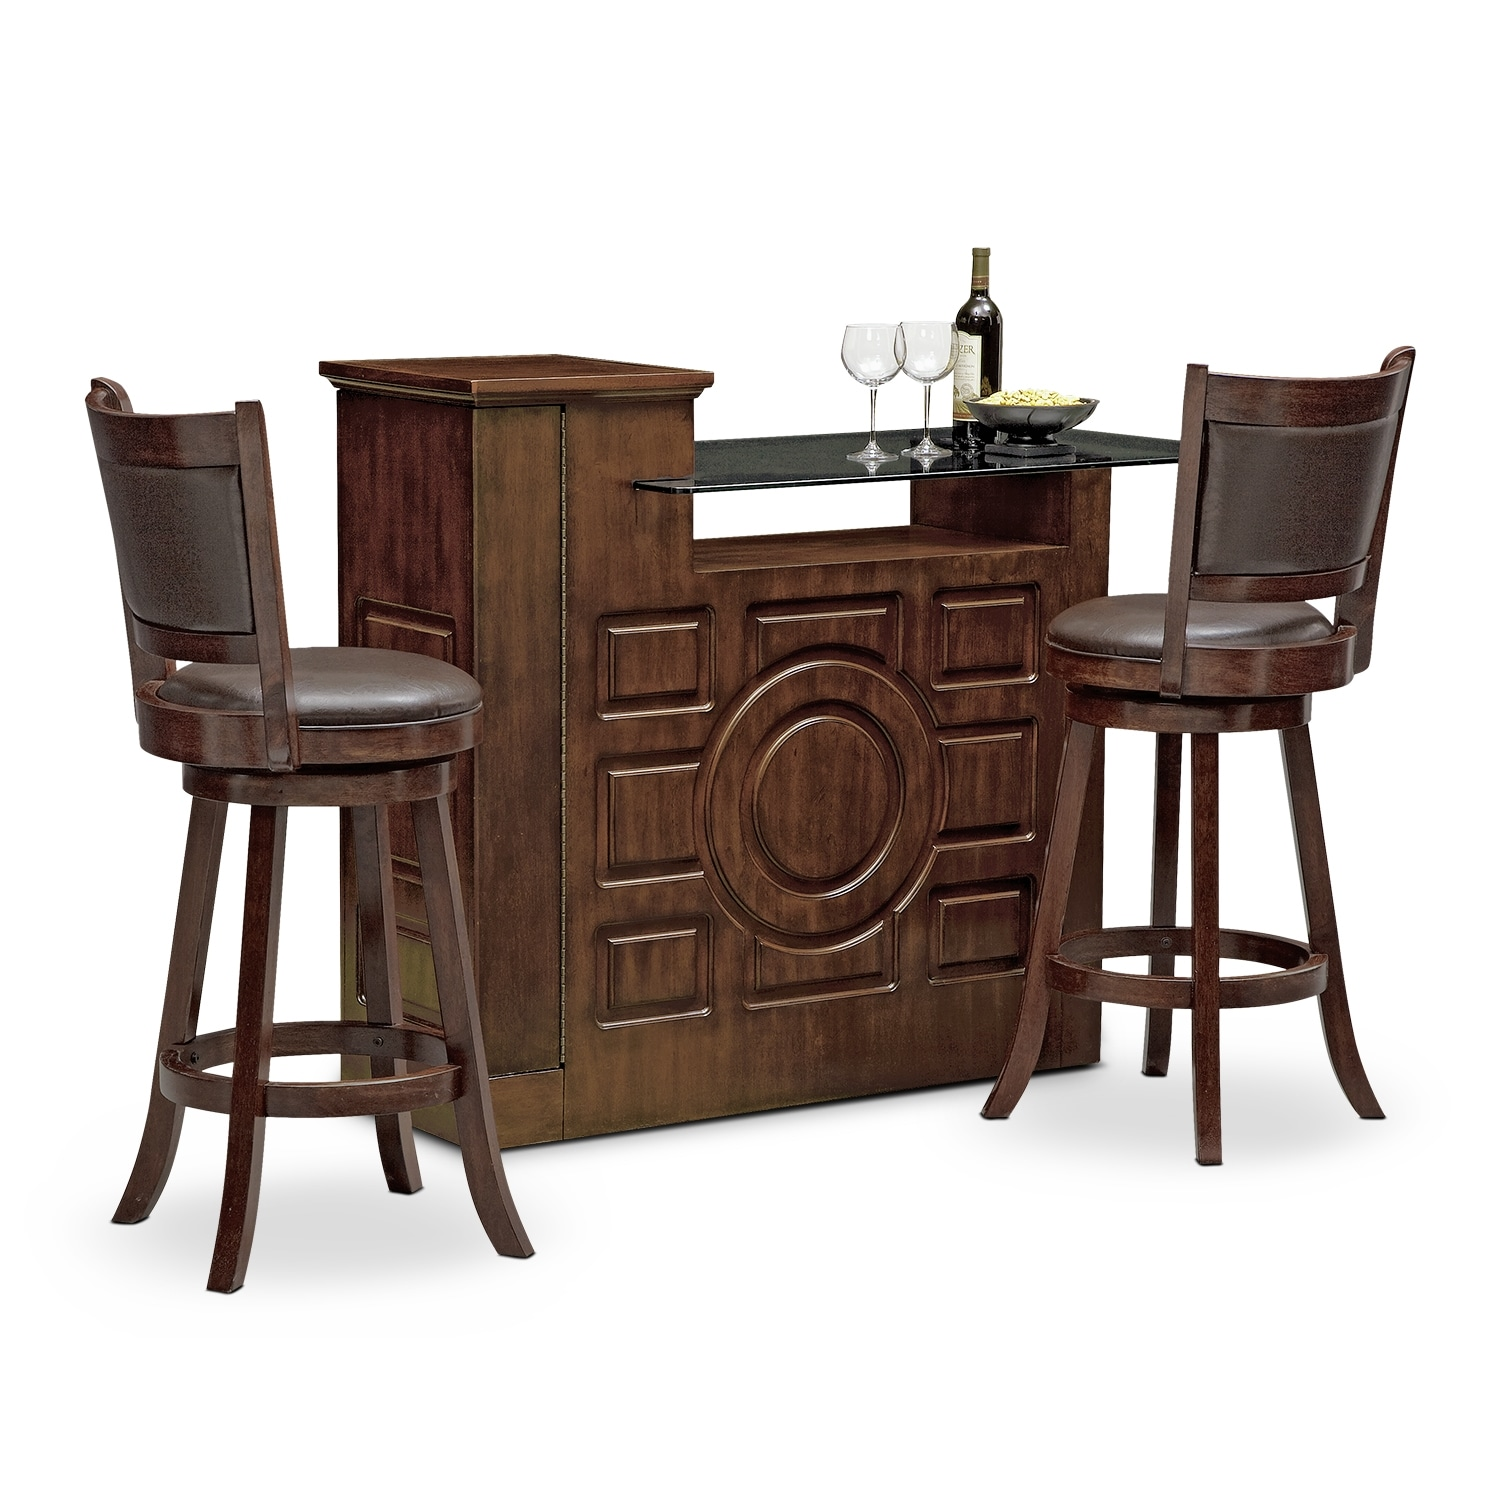 Accent and Occasional Furniture - Origins Everly 3 Pc. Bar Set